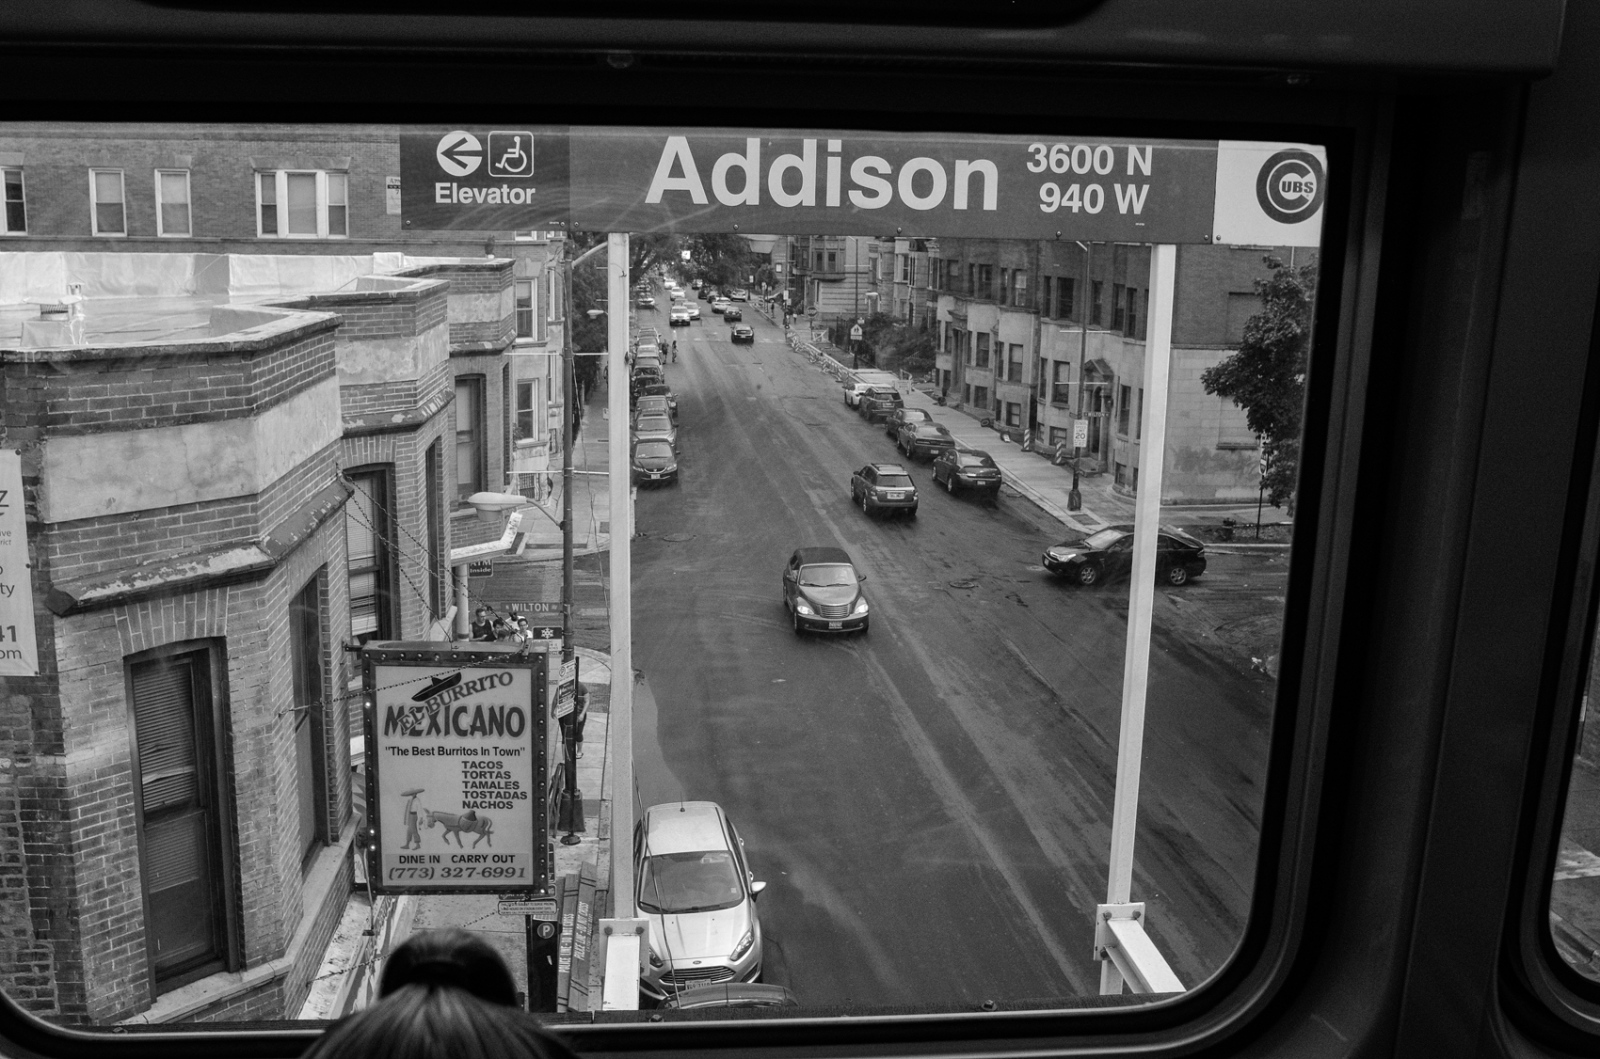 Red Line at Addison, Chicago 2017